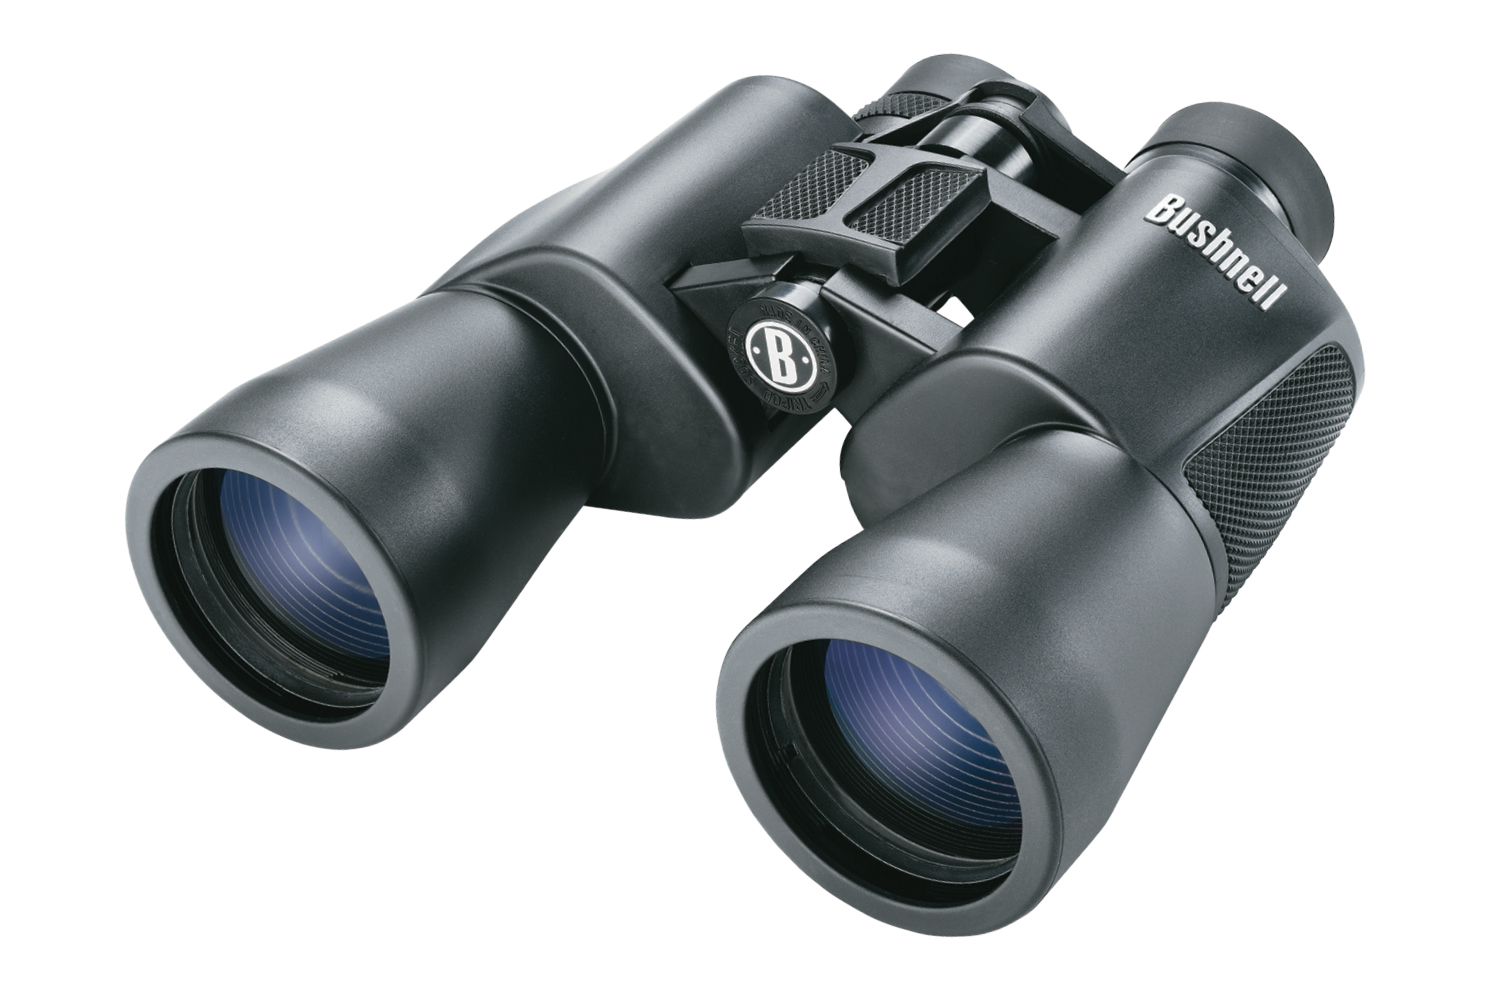 Бинокль Bushnell PowerView PORRO 12x50 бинокль yukon 12x50 wa